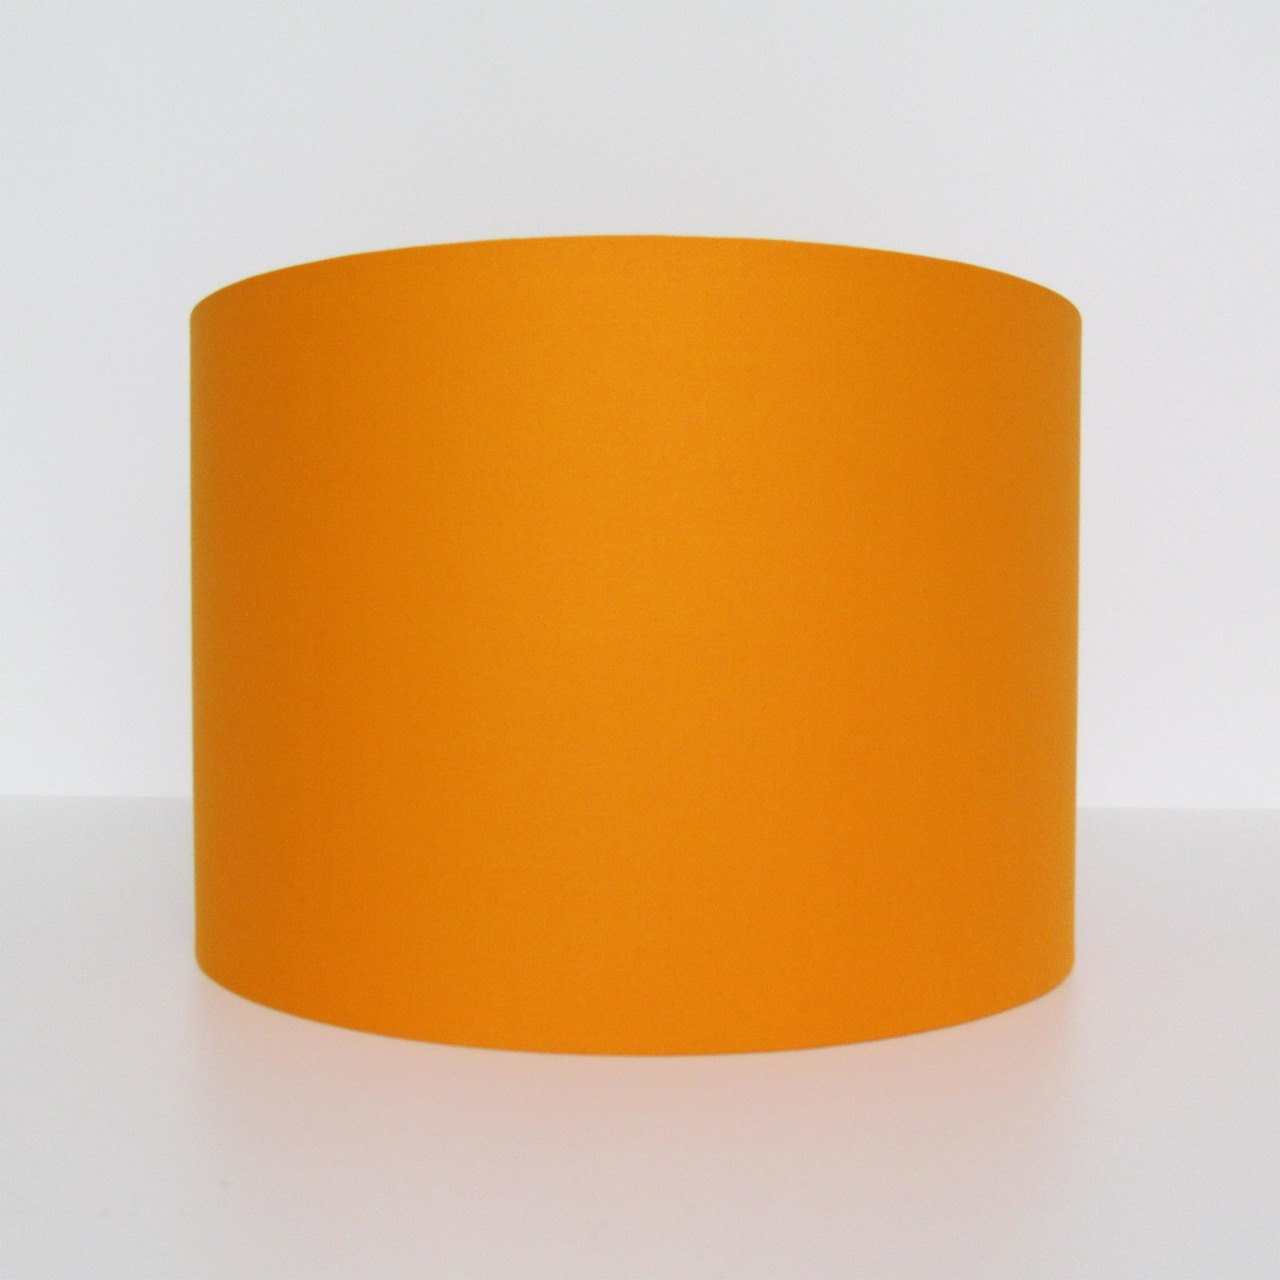 Orange Lightshade - Alternate image